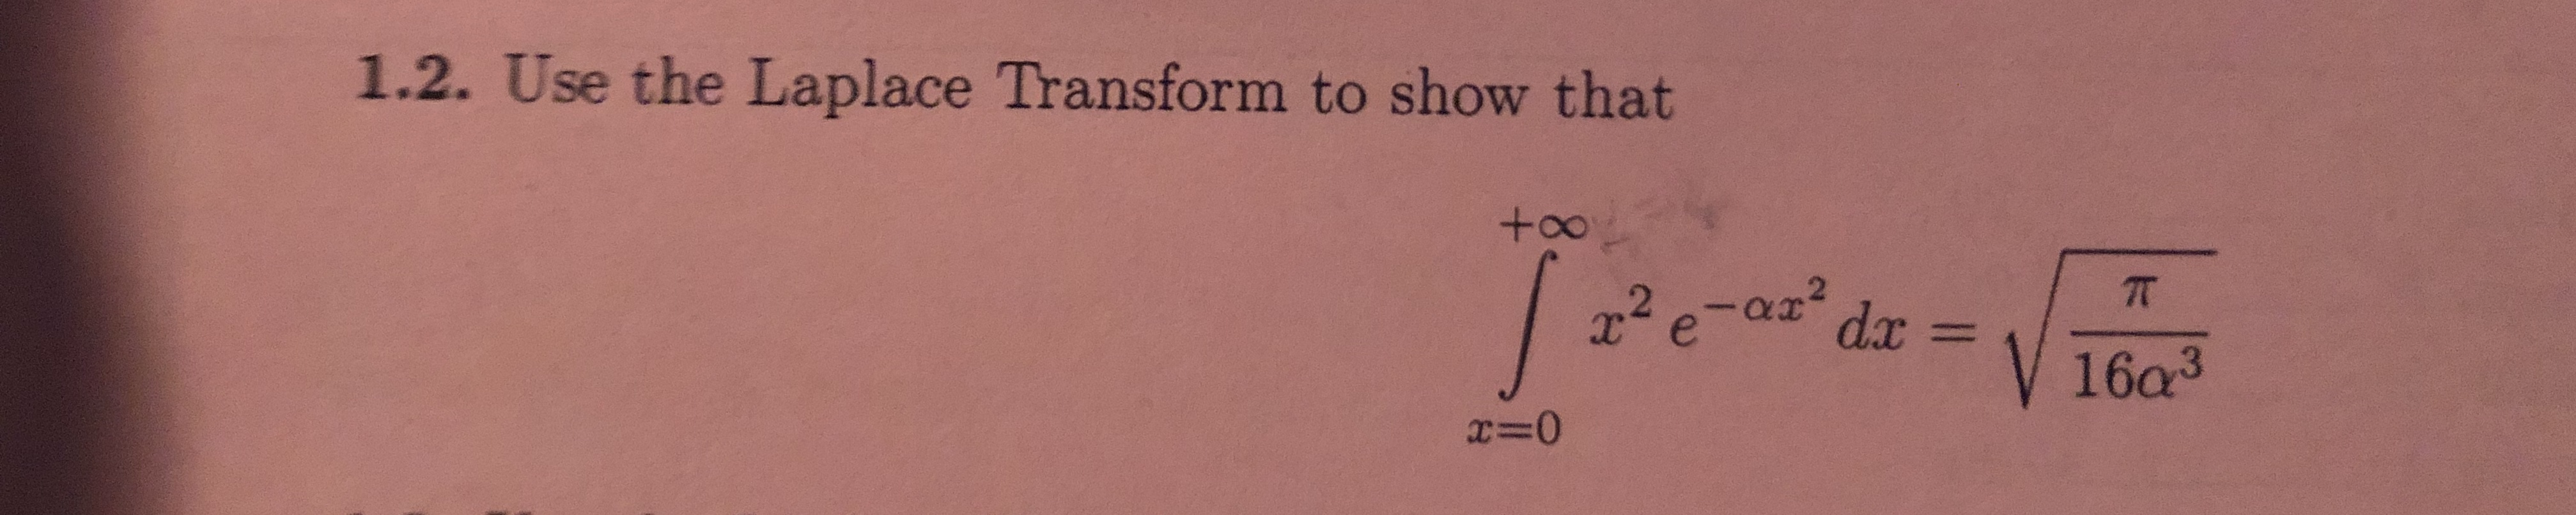 1.2. Use the Laplace Transform to show that +00 2e-aa dx 16a3 x=0